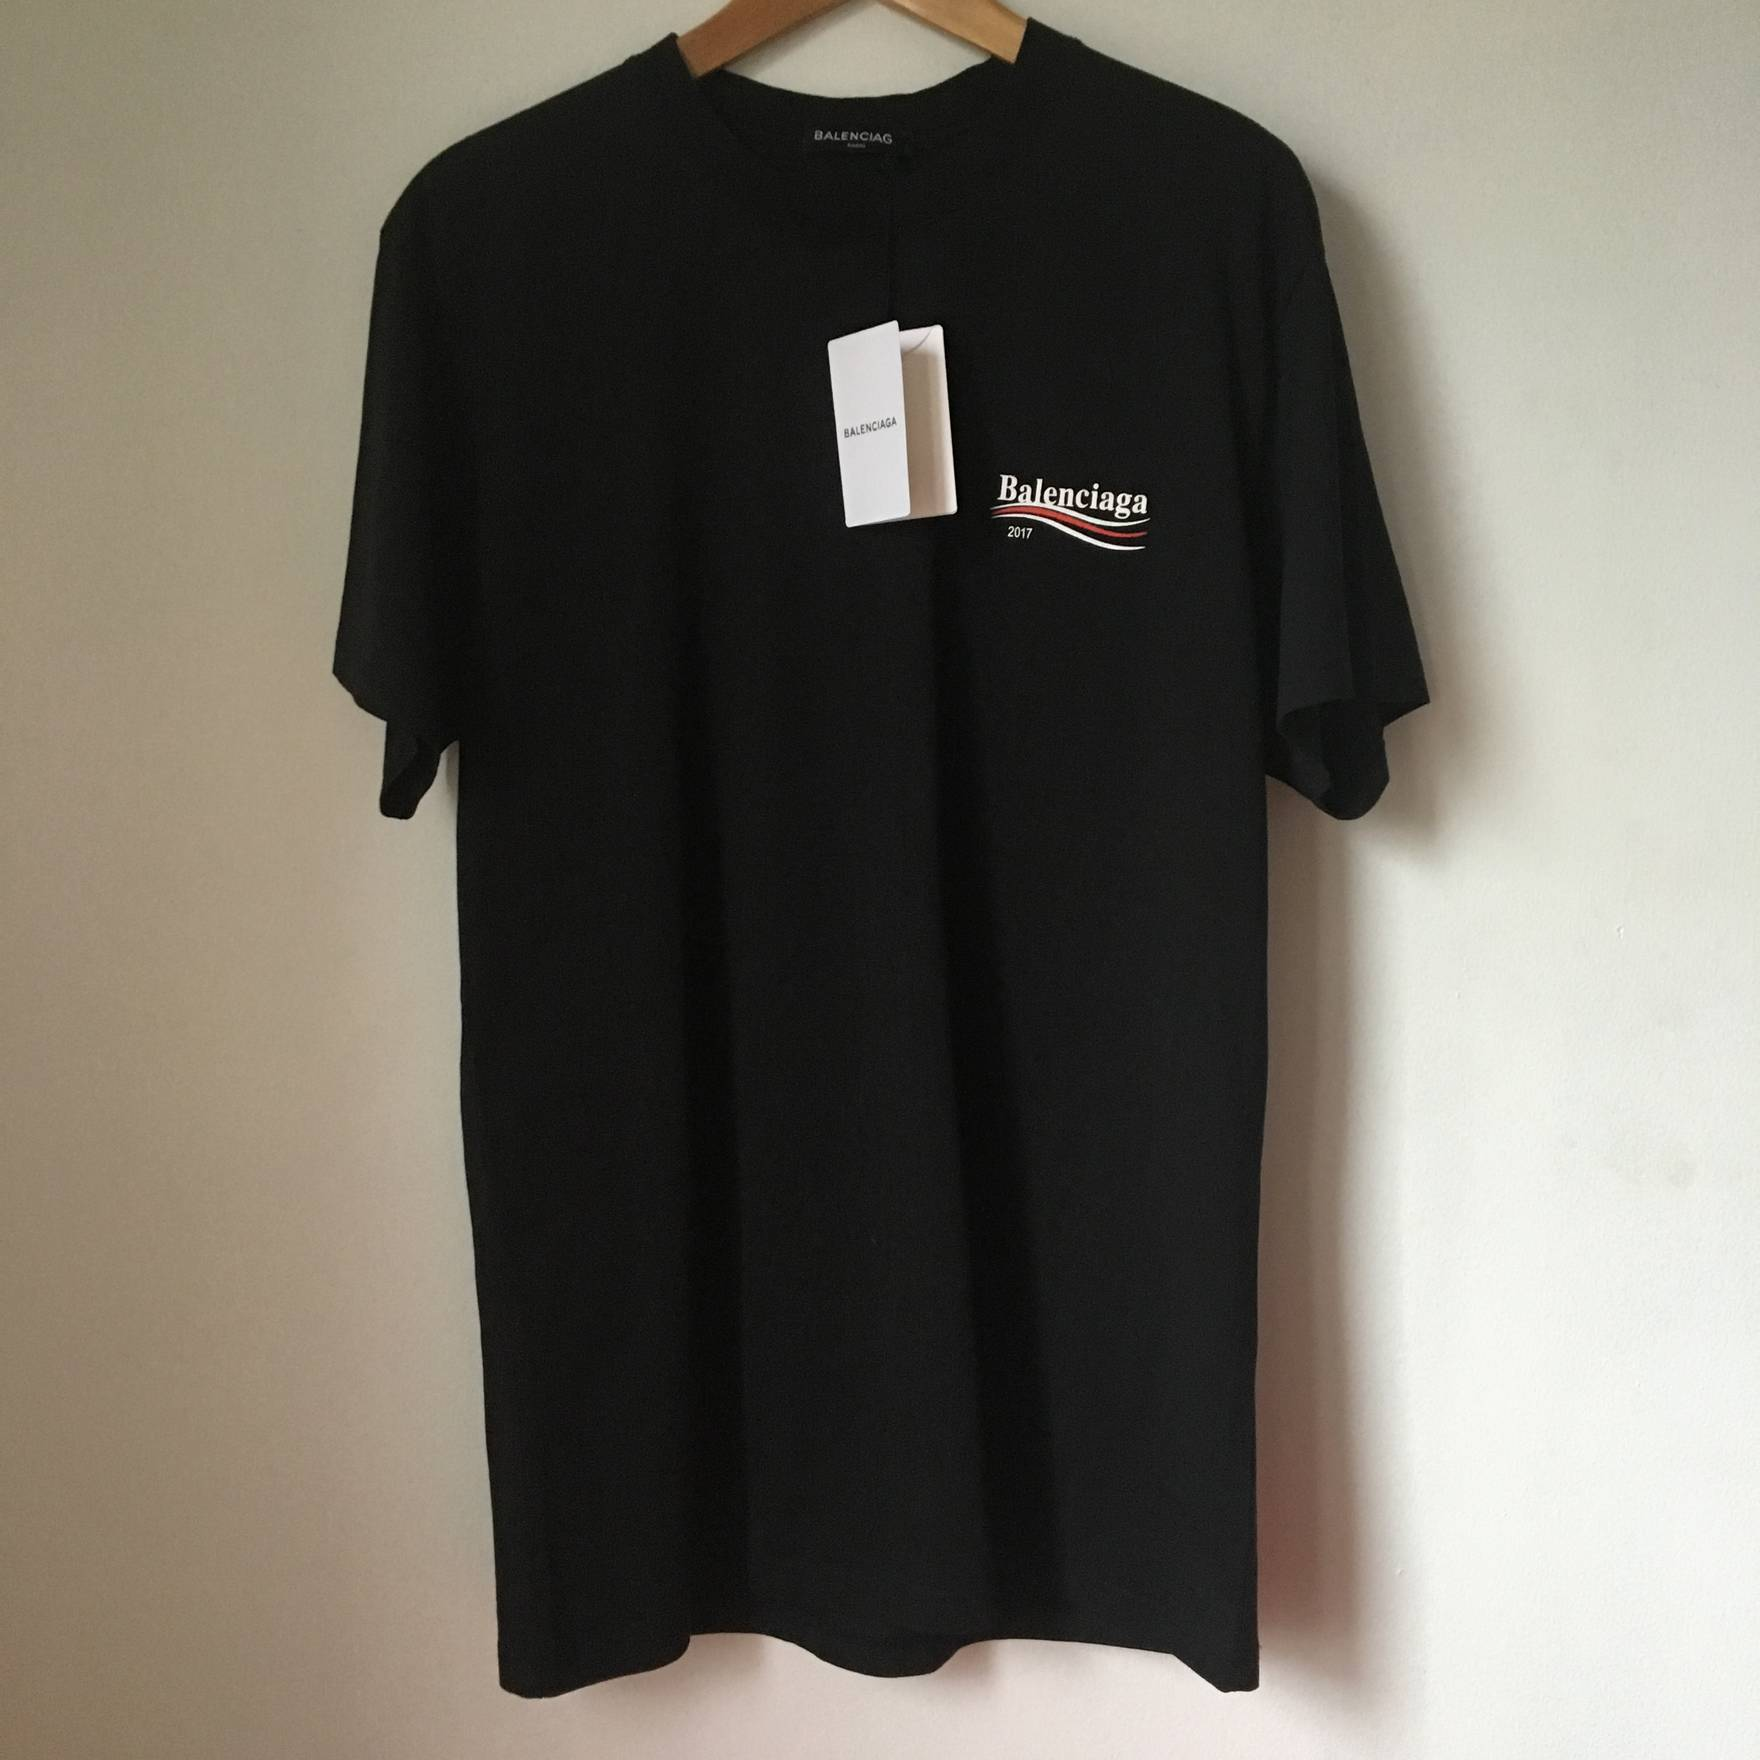 69715880f Balenciaga Black Campaign Logo T-Shirt Size m - Short Sleeve T-Shirts for  Sale - Grailed